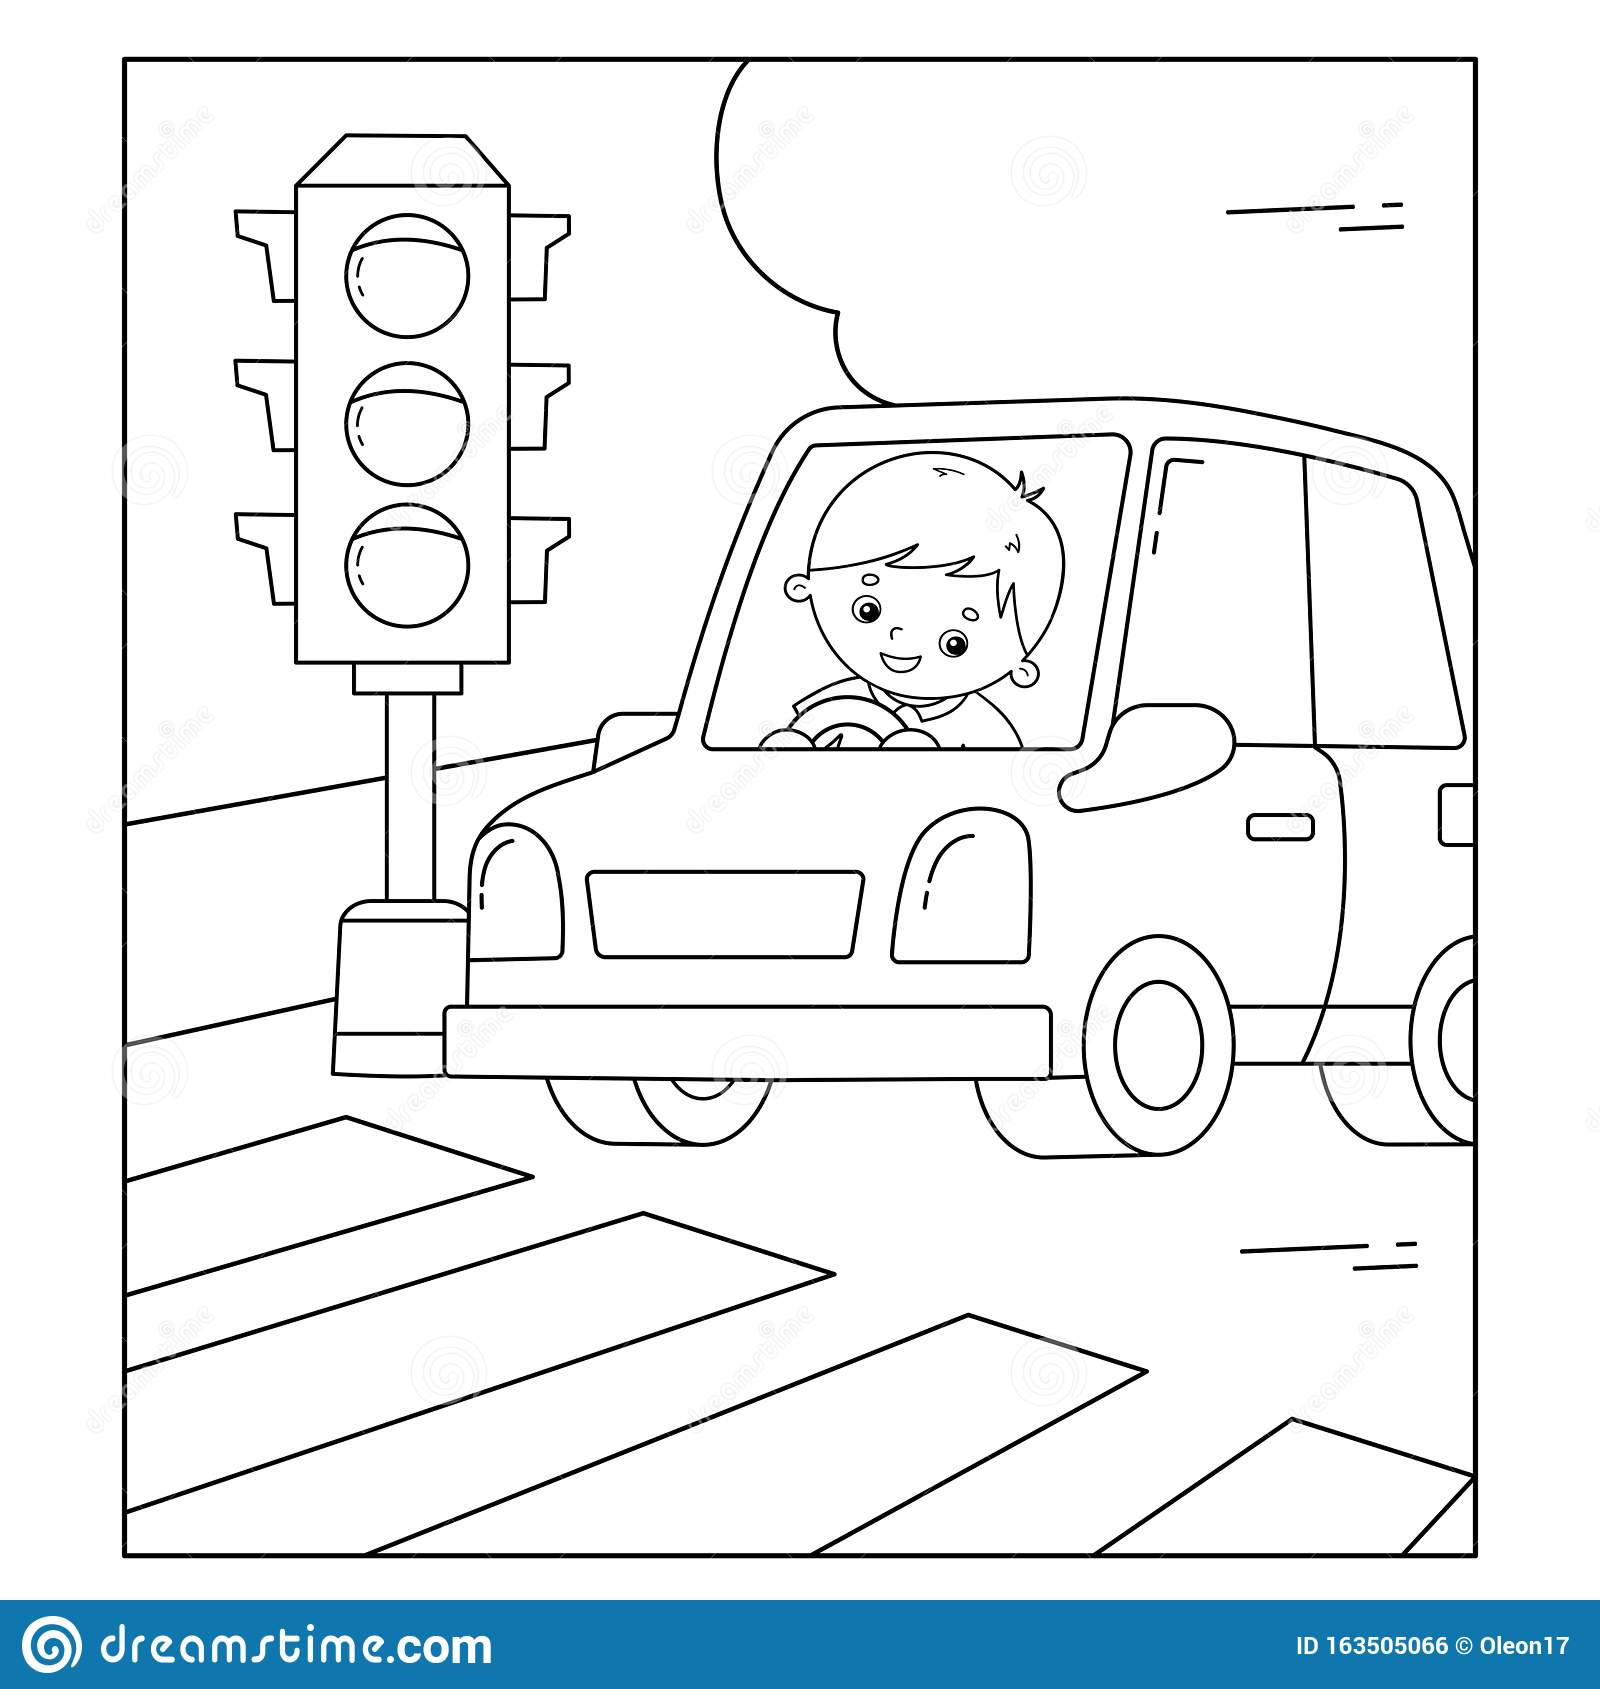 Coloring Traffic Stock Illustrations 1 184 Coloring Traffic Stock Illustrations Vectors Clipart Dreamstime